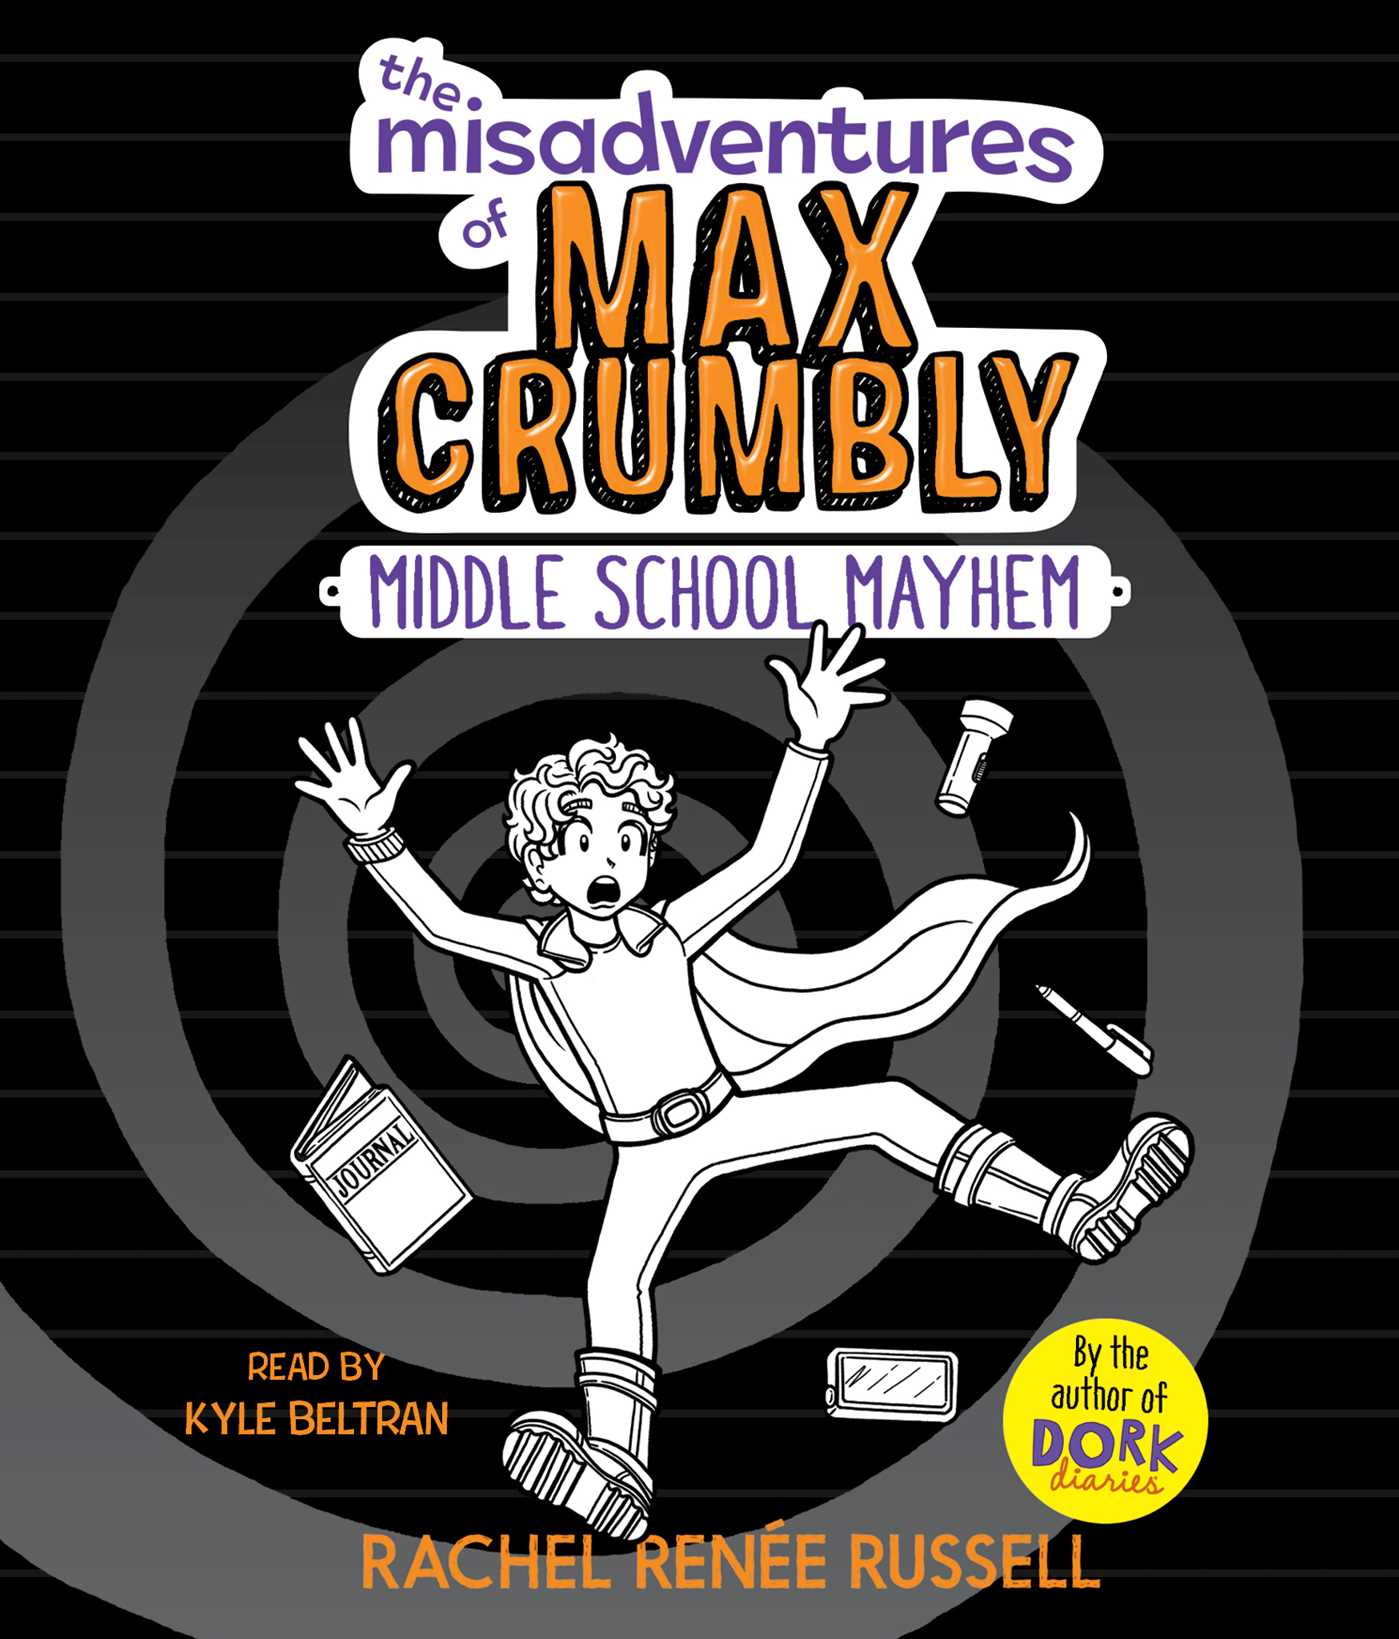 The misadventures of max crumbly 2 9781508232209 hr